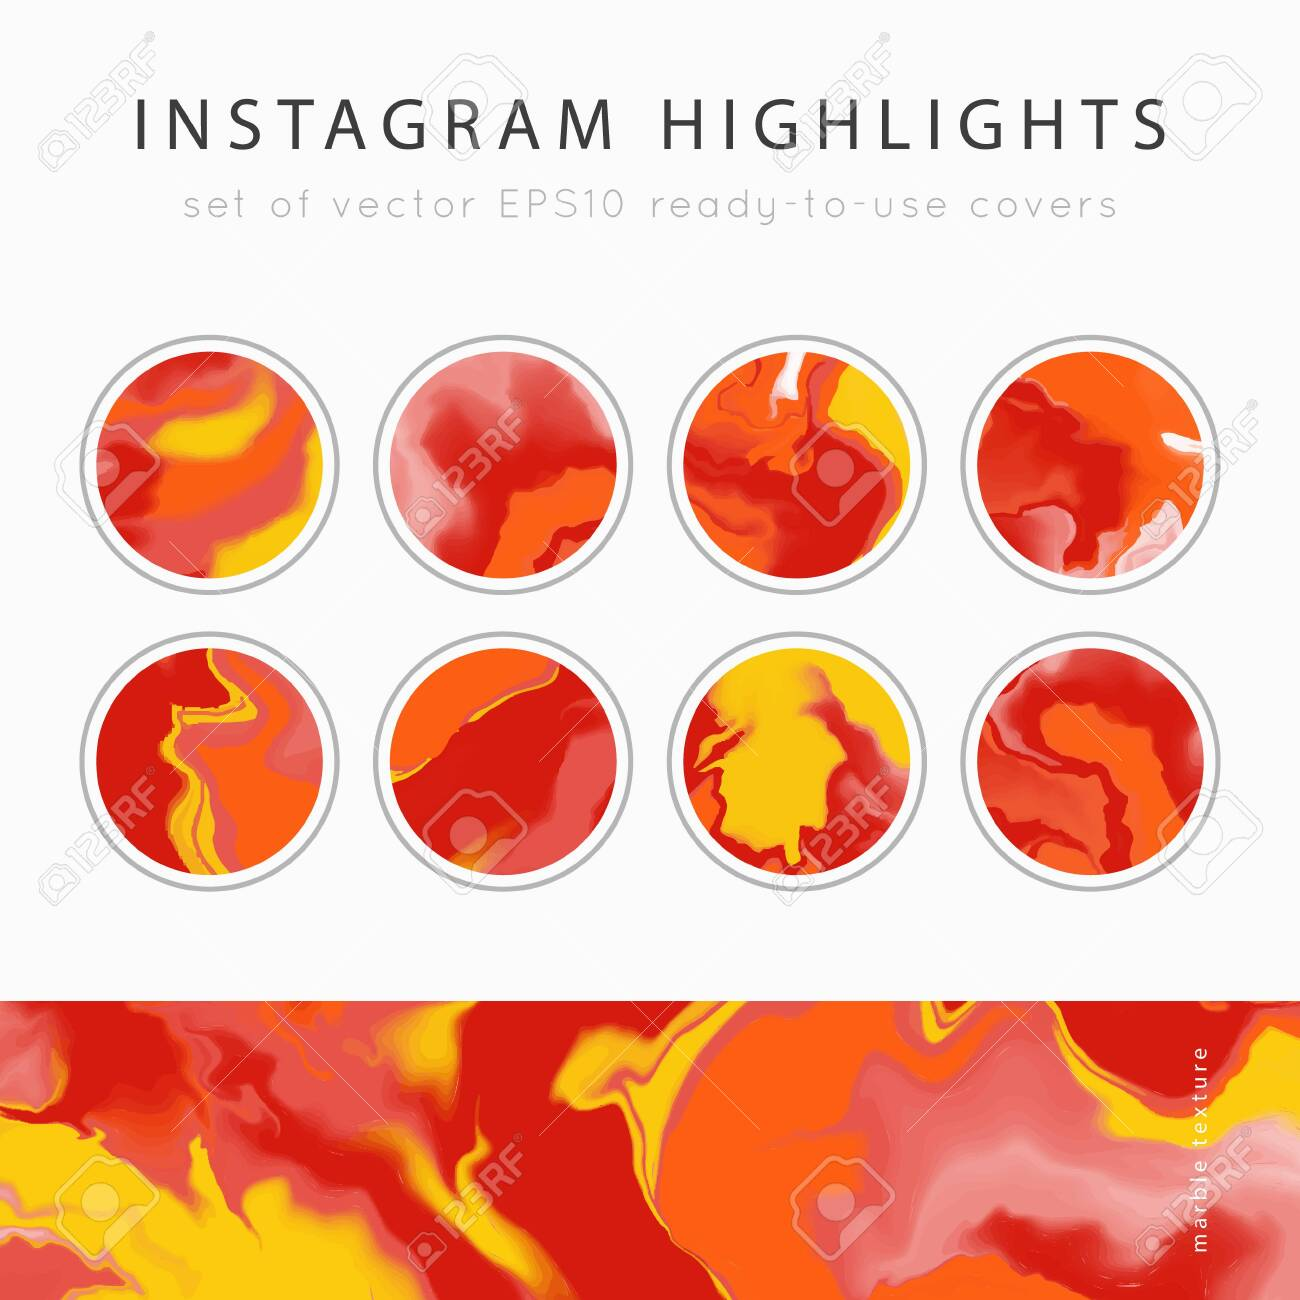 Instagram Highlight Covers Background Templates Set Of Marble Royalty Free Cliparts Vectors And Stock Illustration Image 136819921